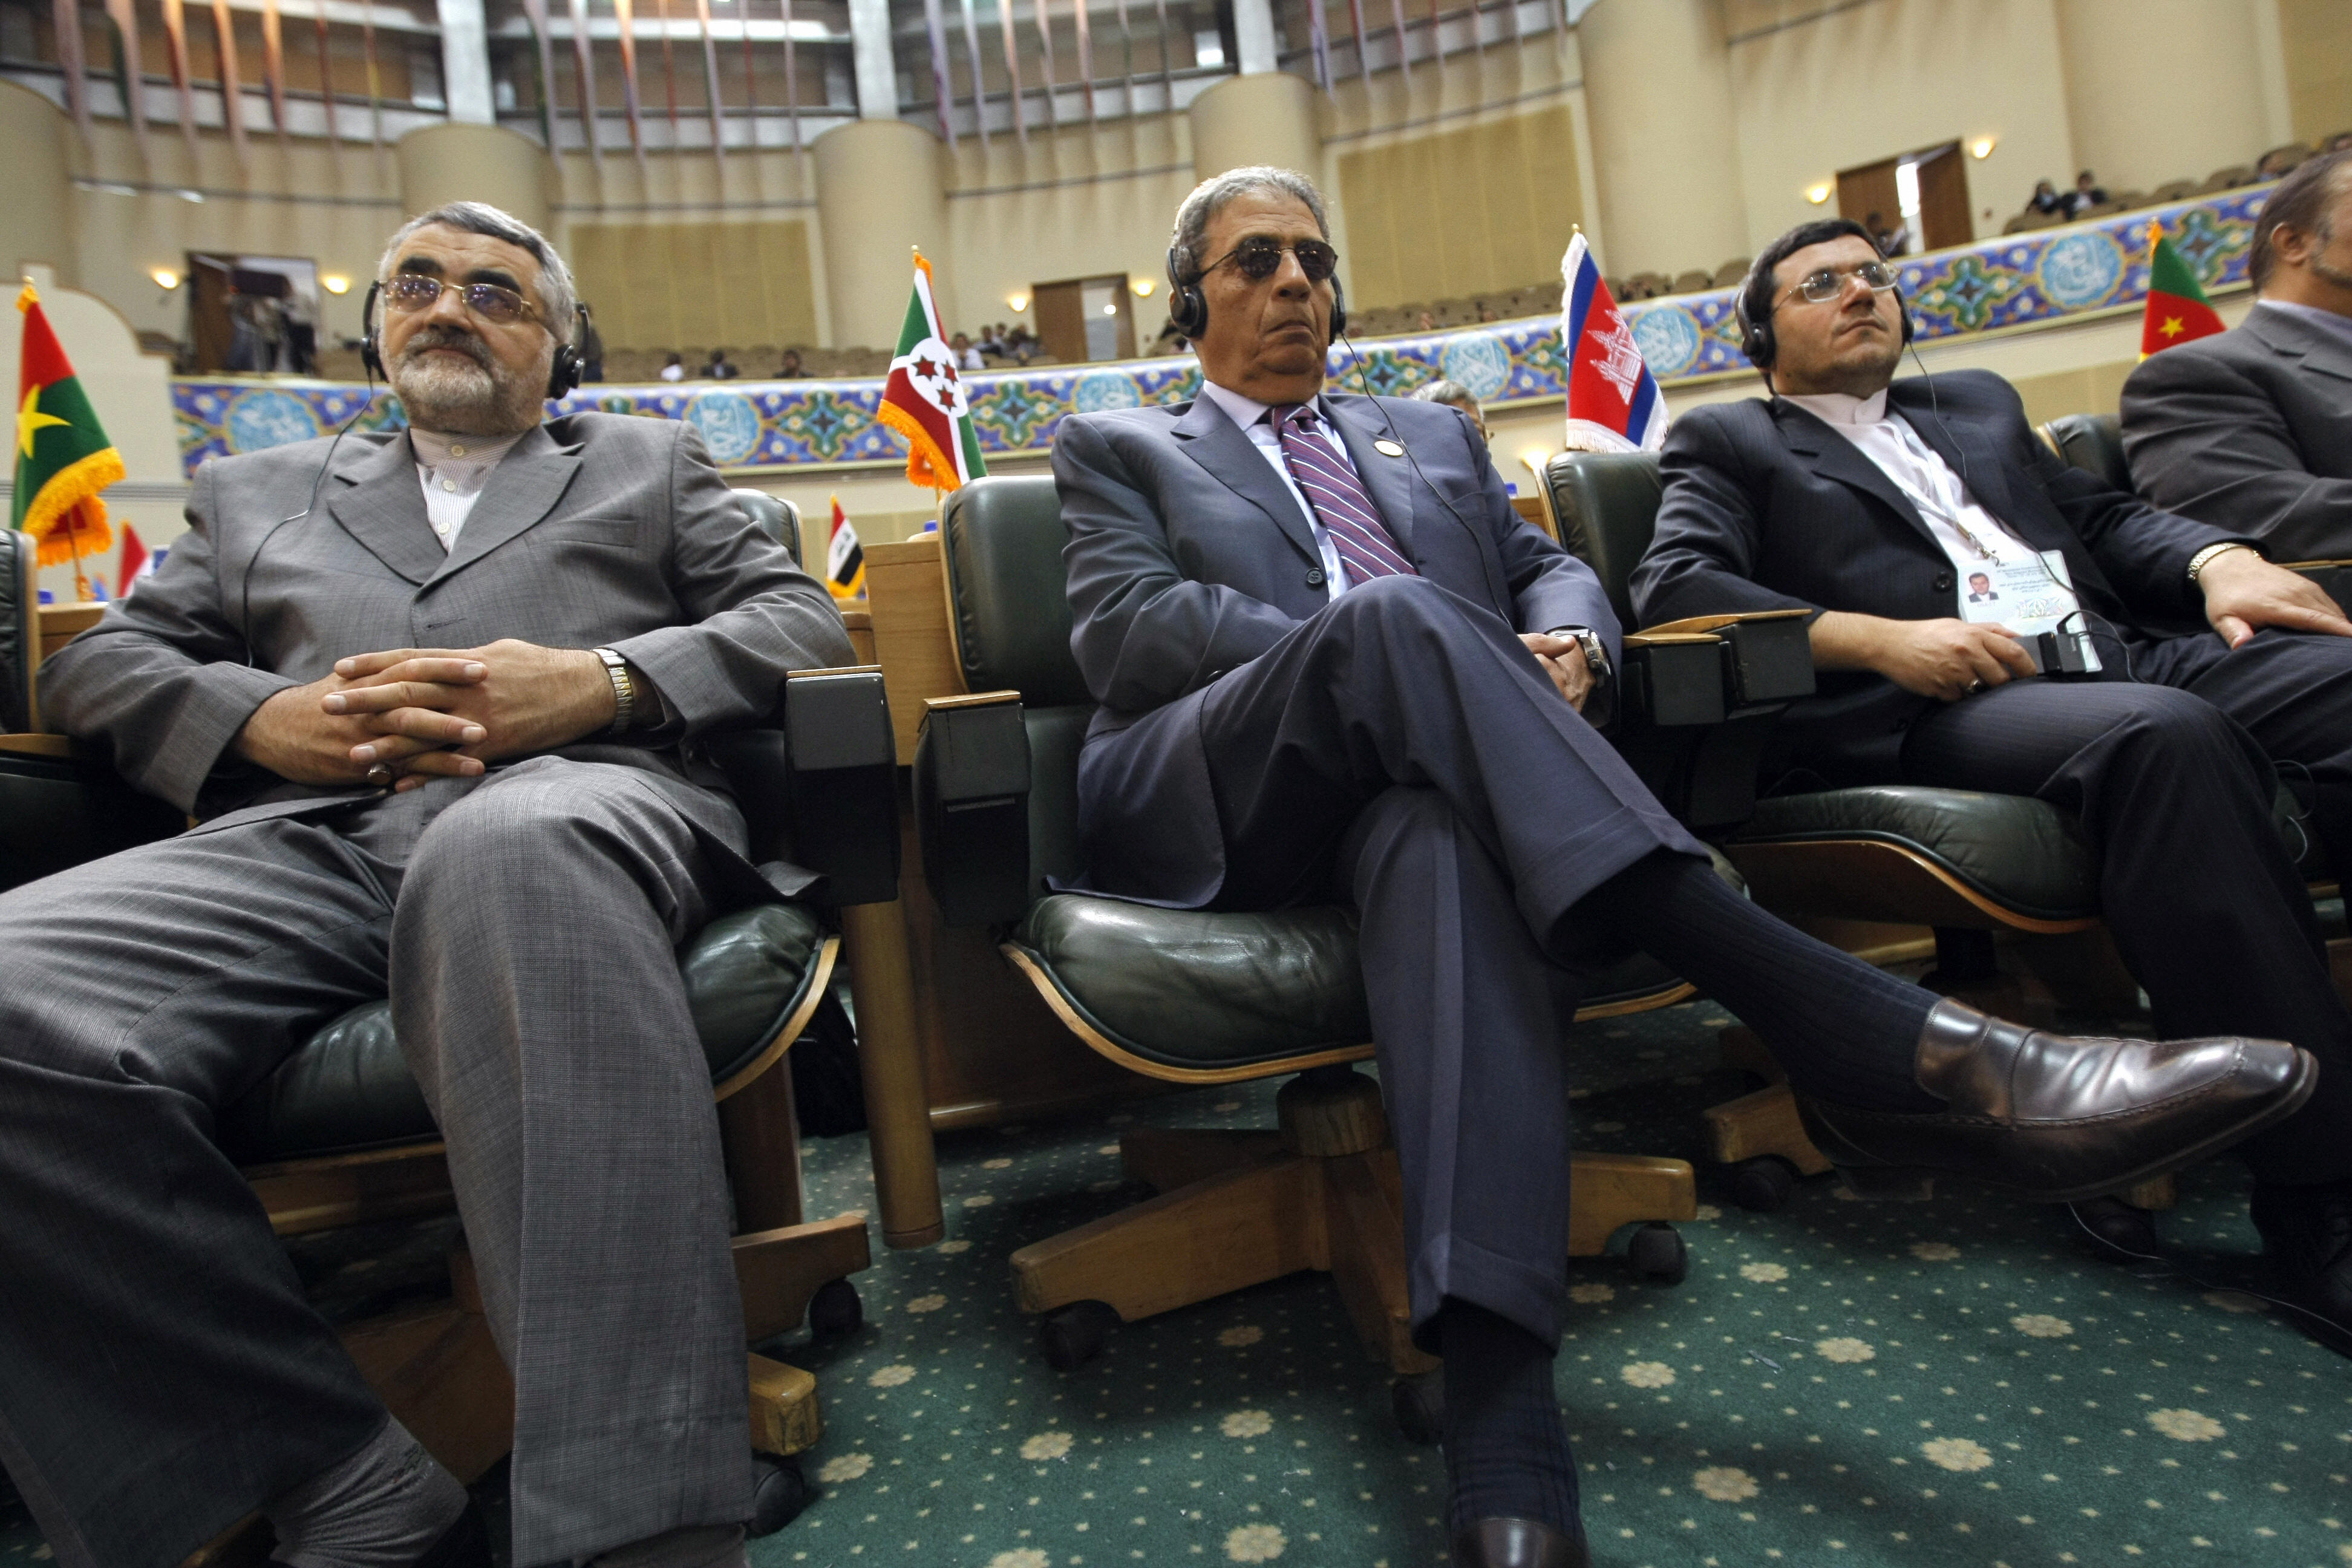 Arab League Secretary General Amr Mussa and Iranian prominent MP, Alaeddin Boroujerdi listen to the speech.